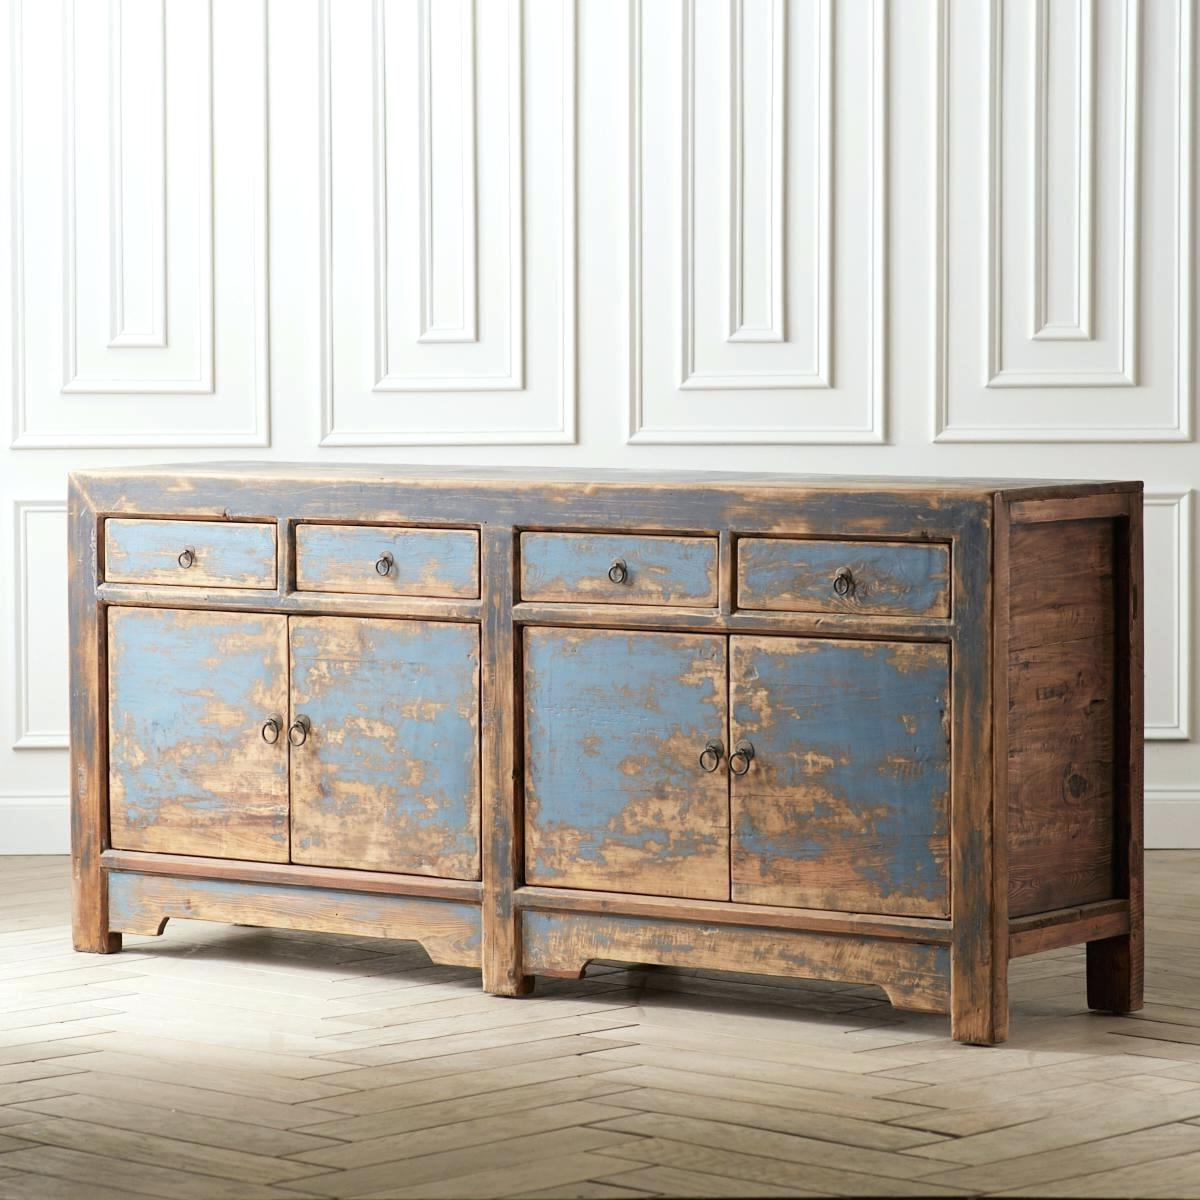 Unique Sideboards – Aftermidnight (View 20 of 20)